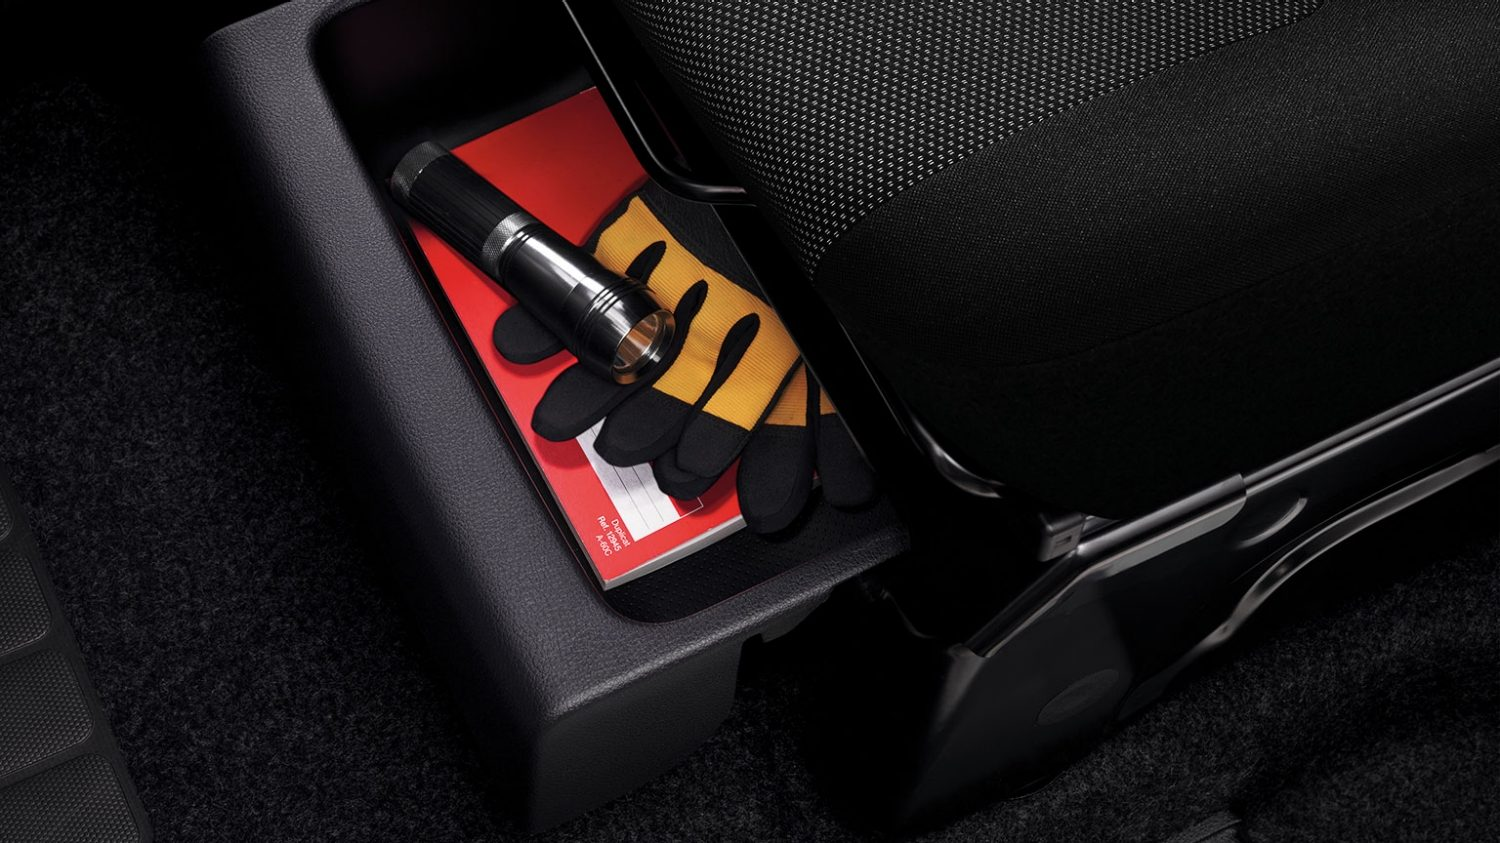 e-NV200 frontseat drawer